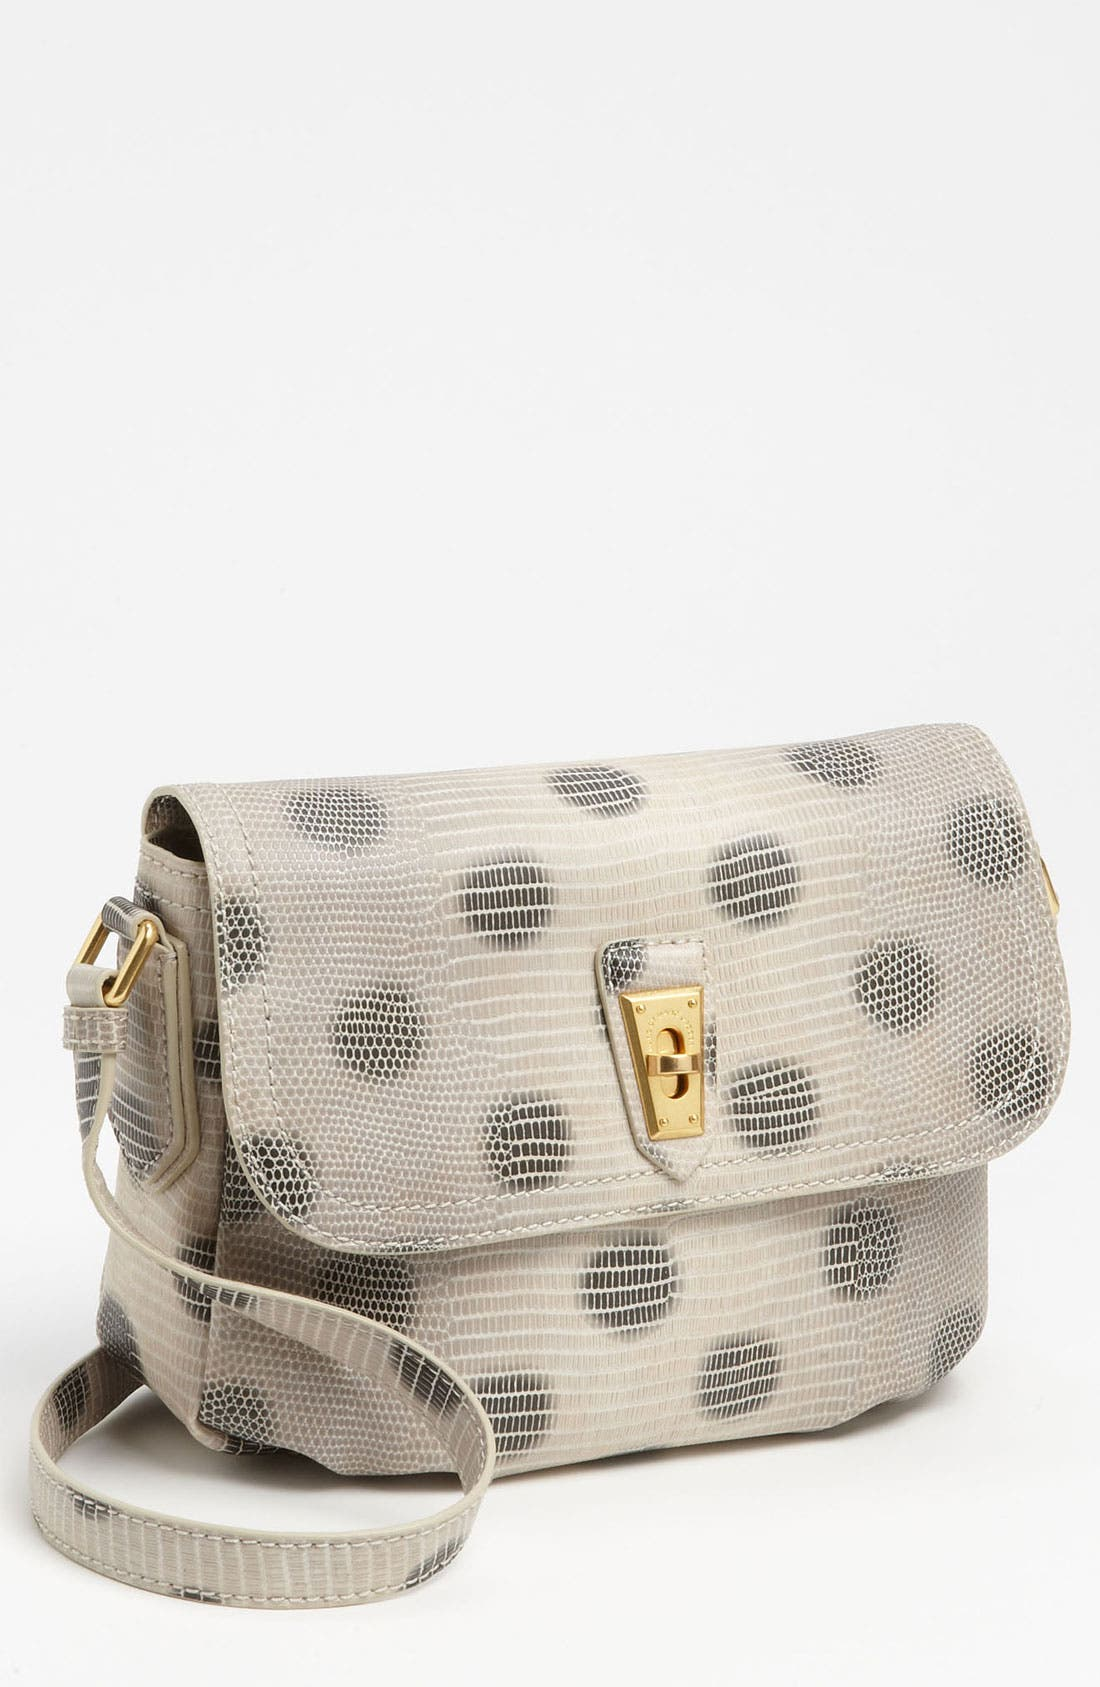 Alternate Image 1 Selected - MARC BY MARC JACOBS 'Lizzie Dots' Embossed Crossbody Bag